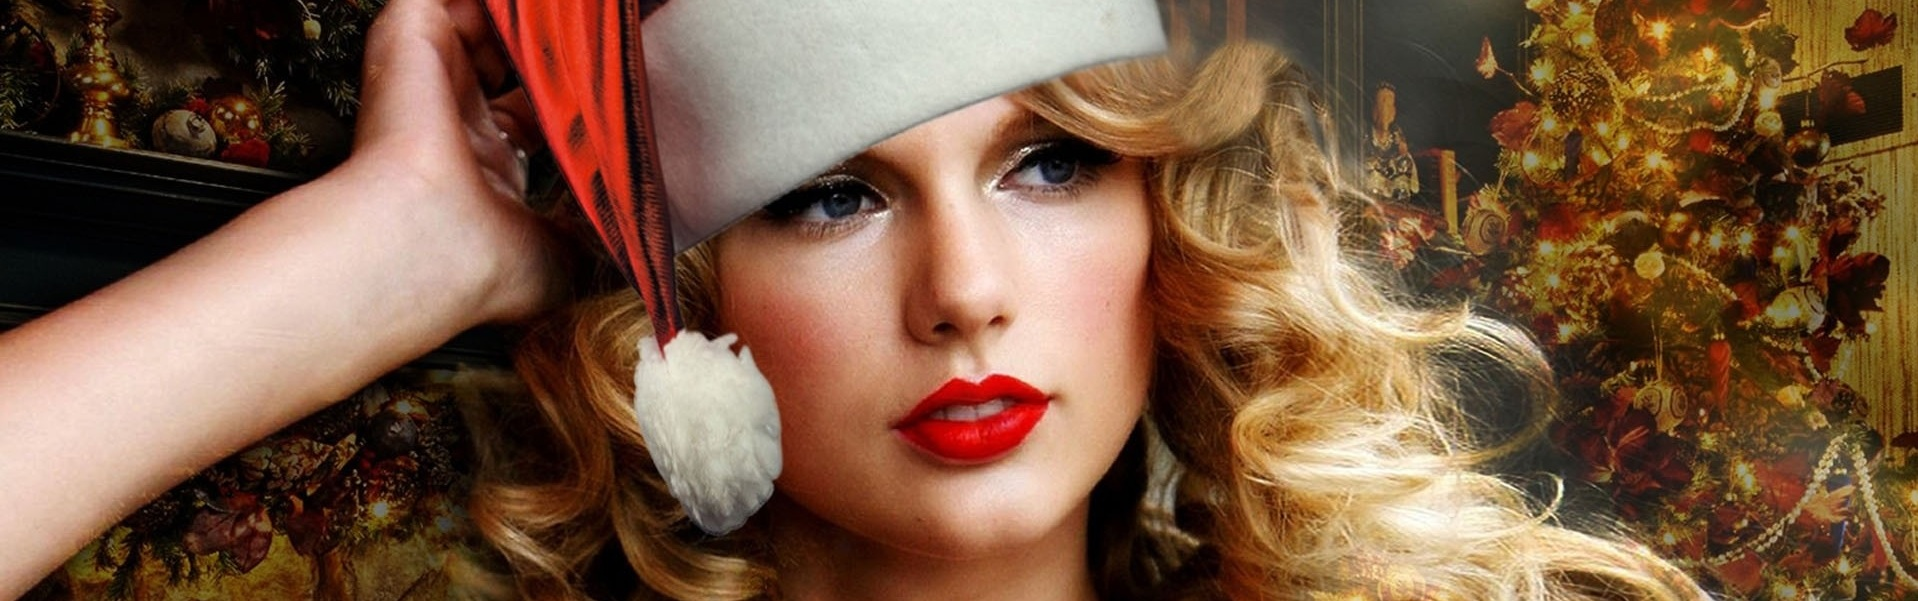 Taylor Swift Christmas.The Taylor Swift Holiday Collection Ep Taylor Swift